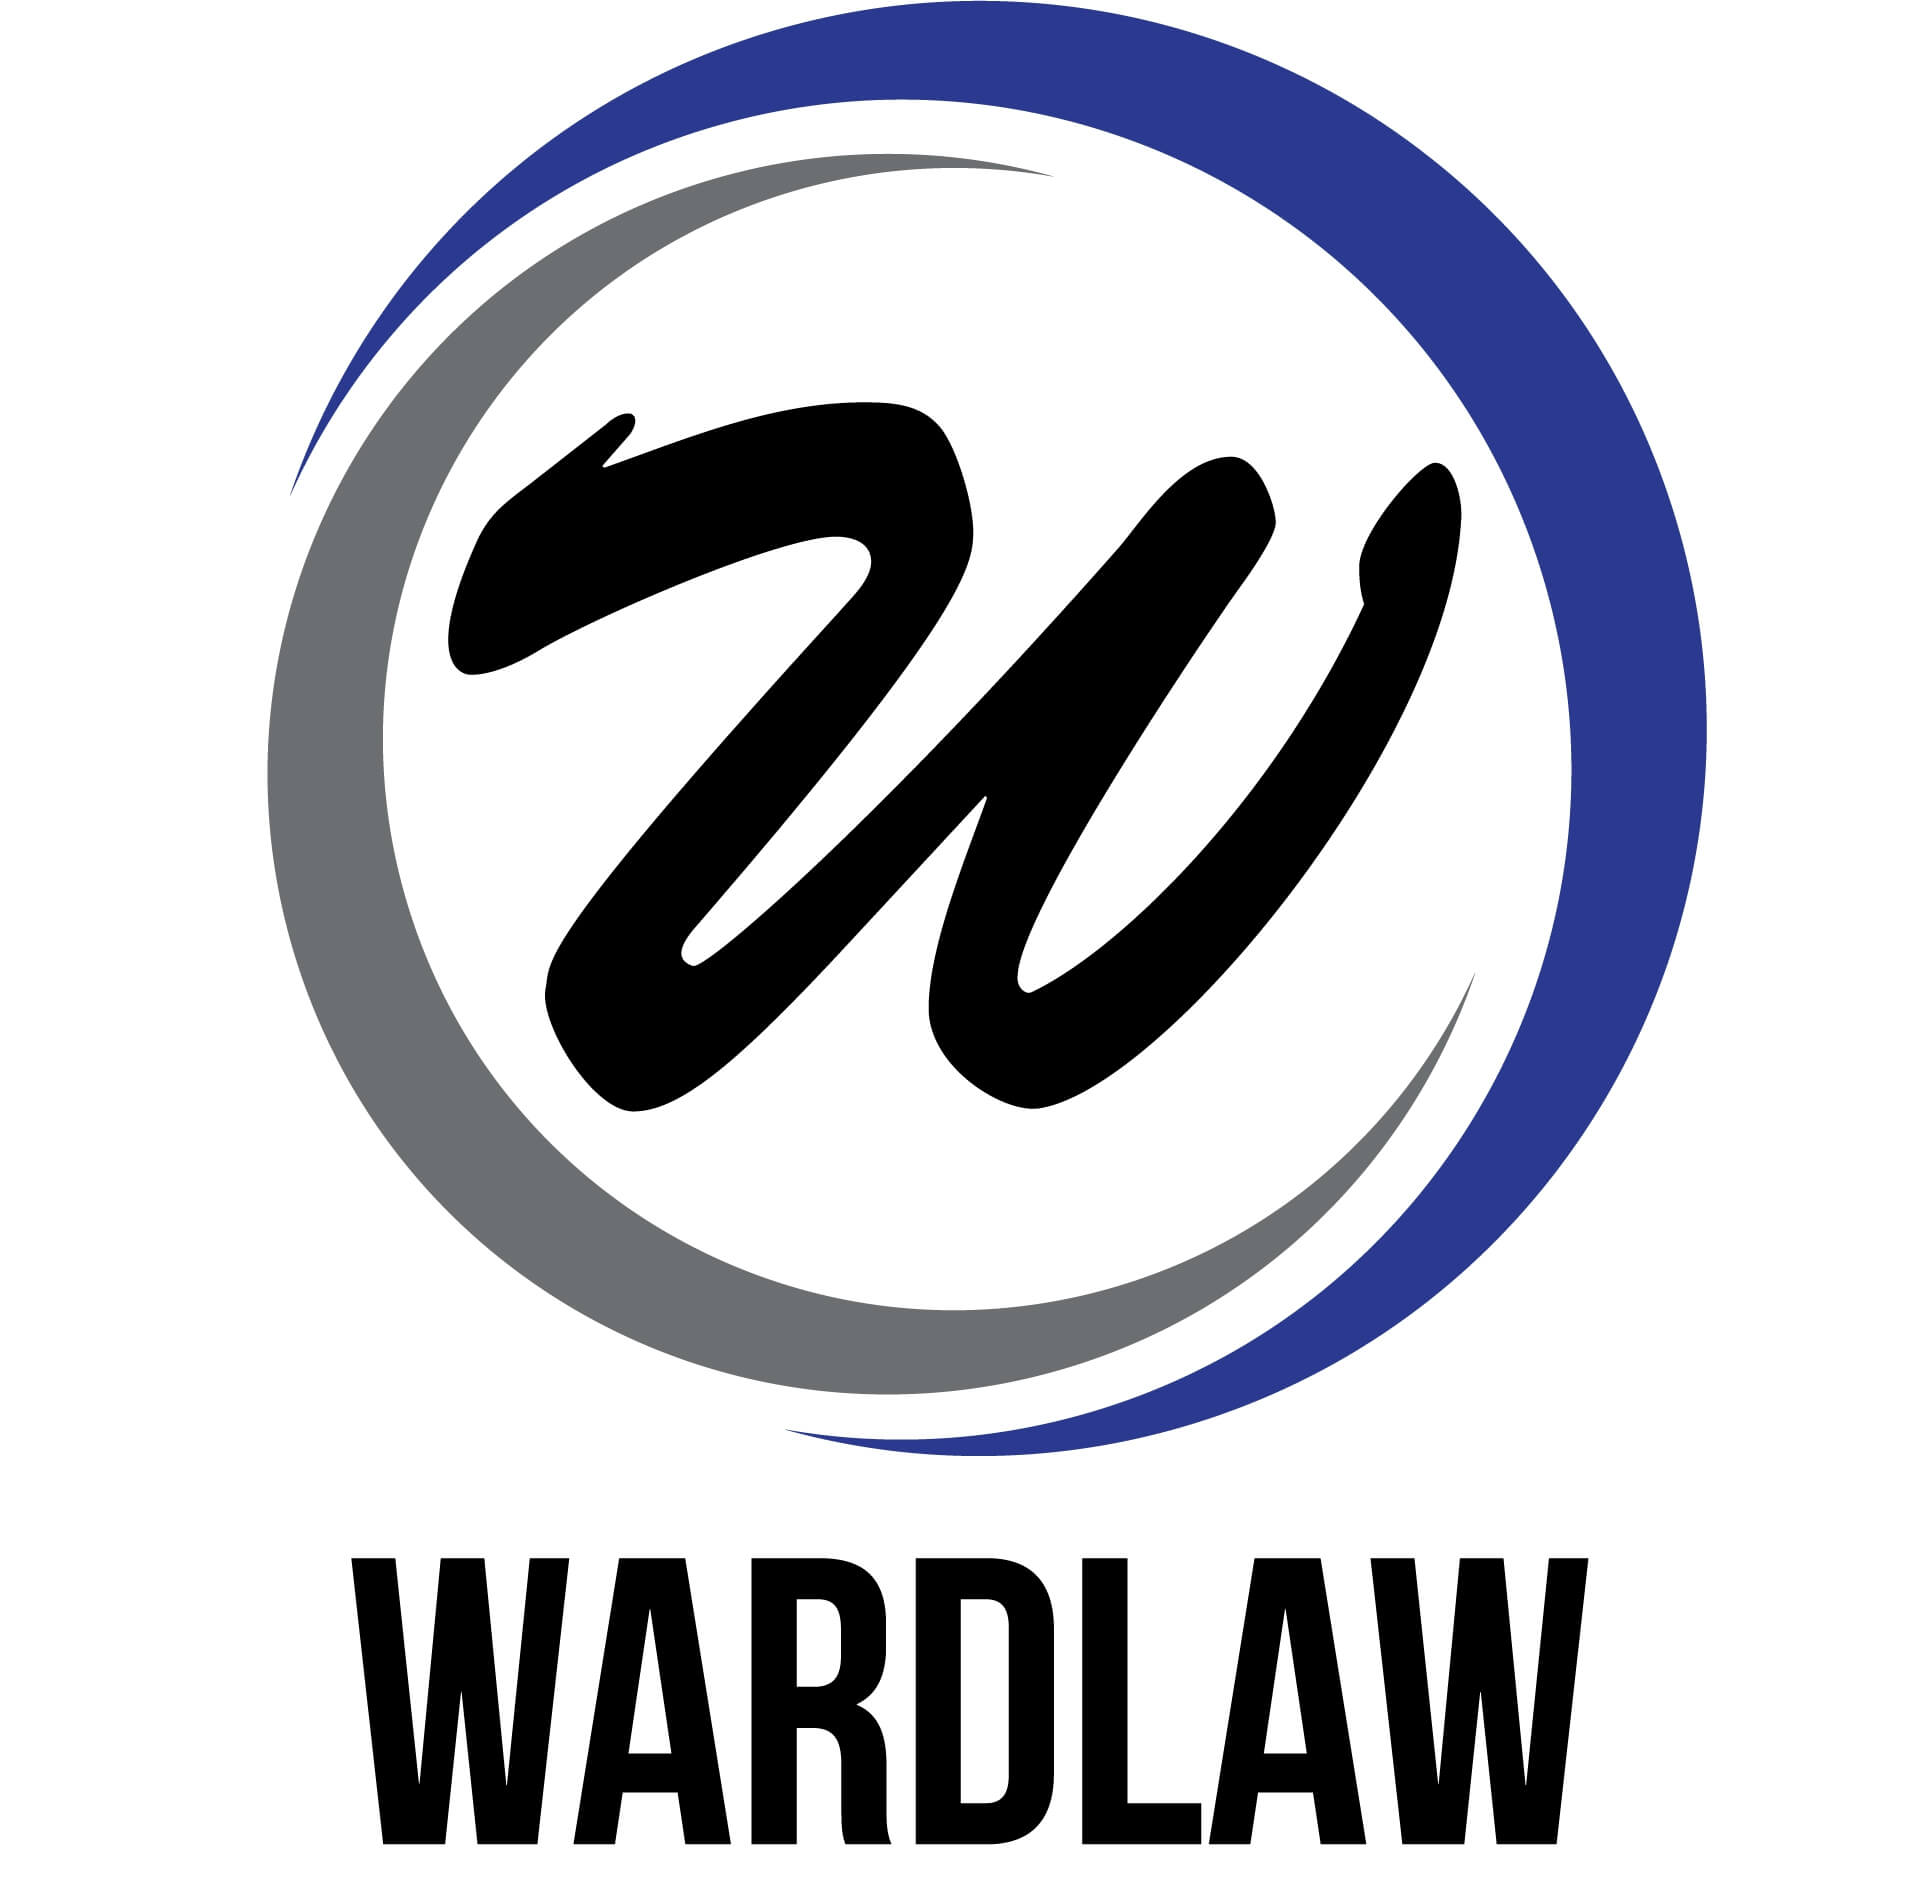 http://talexespartners.com/wp-content/uploads/2015/09/Wardlaw-no-descriptors.jpg